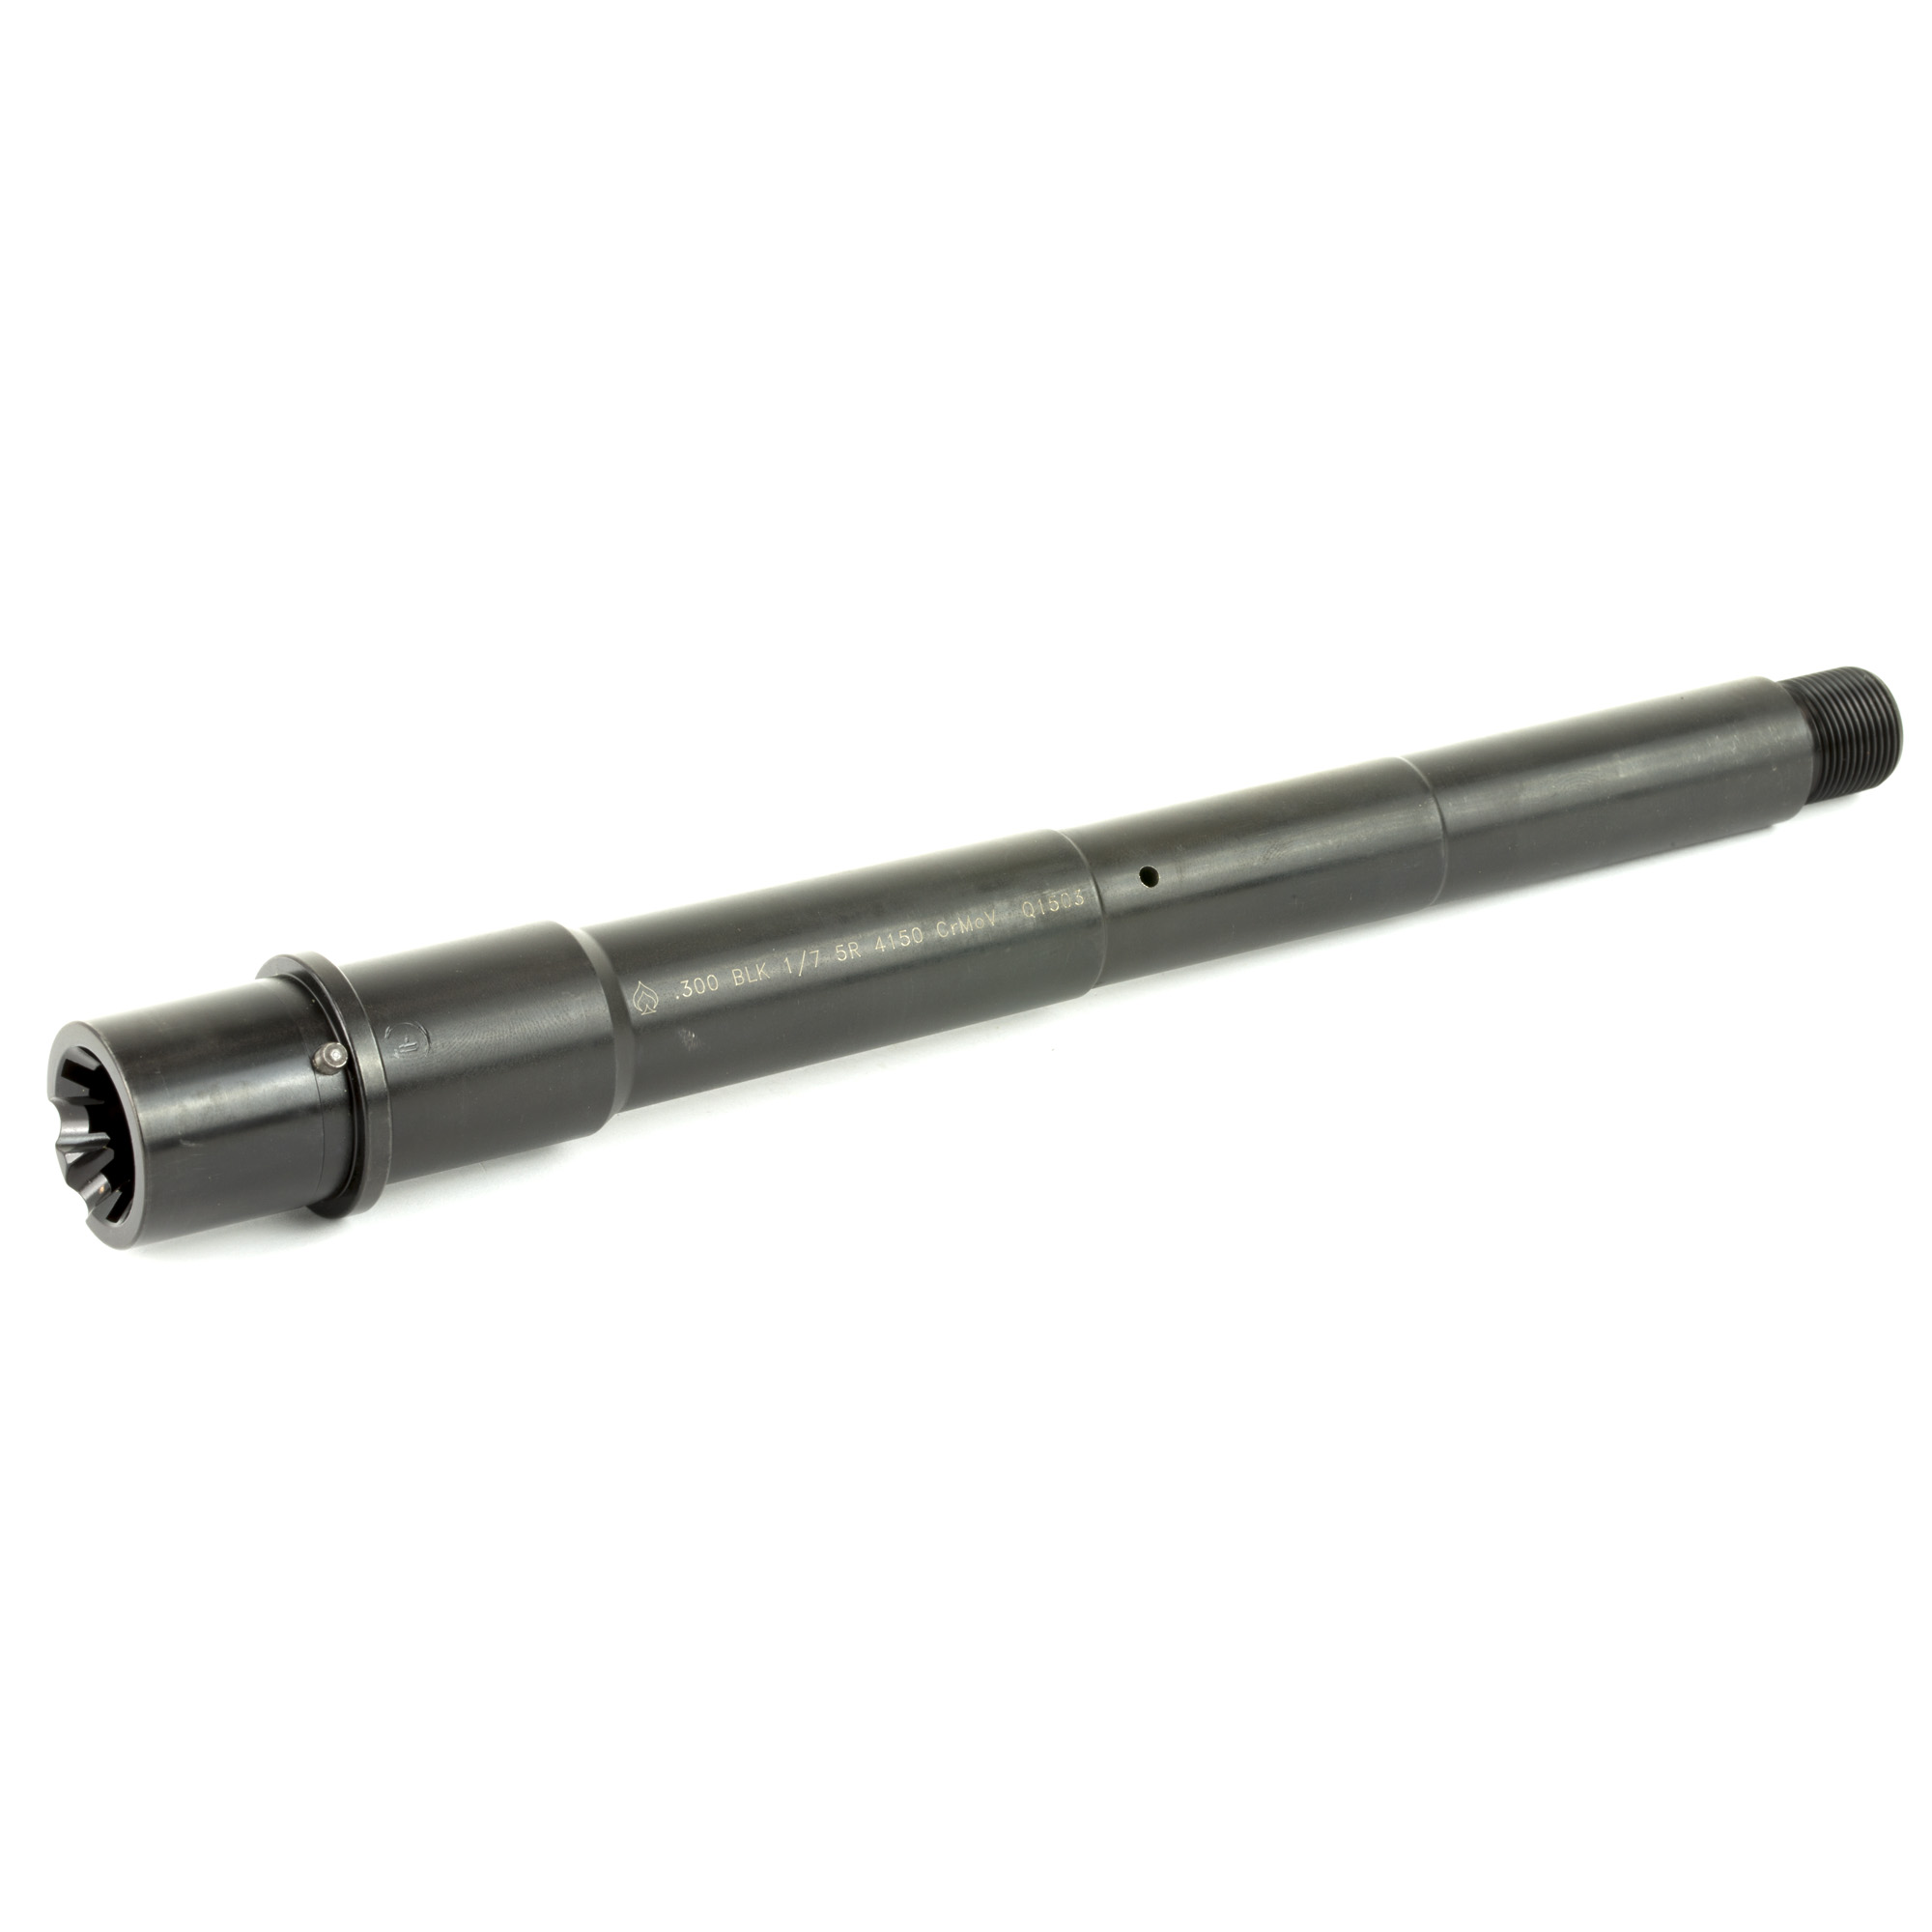 """This .300 Blackout chambered 8 inch Modern Series Barrel is machined from 4150 Chrome Moly Vanadium steel with a QPQ Corrosion Resistant Finish and QPQ coated M4 feed ramp extension. All NFA/ATF Rules Apply. You may use this barrel with a lower receiver that is a Registered SBR"""" Machine Gun"""" or Pistol. Possession of this barrel along with a Non-NFA lower receiver is Prohibited"""" except when installed on a Pistol configuration firearm."""